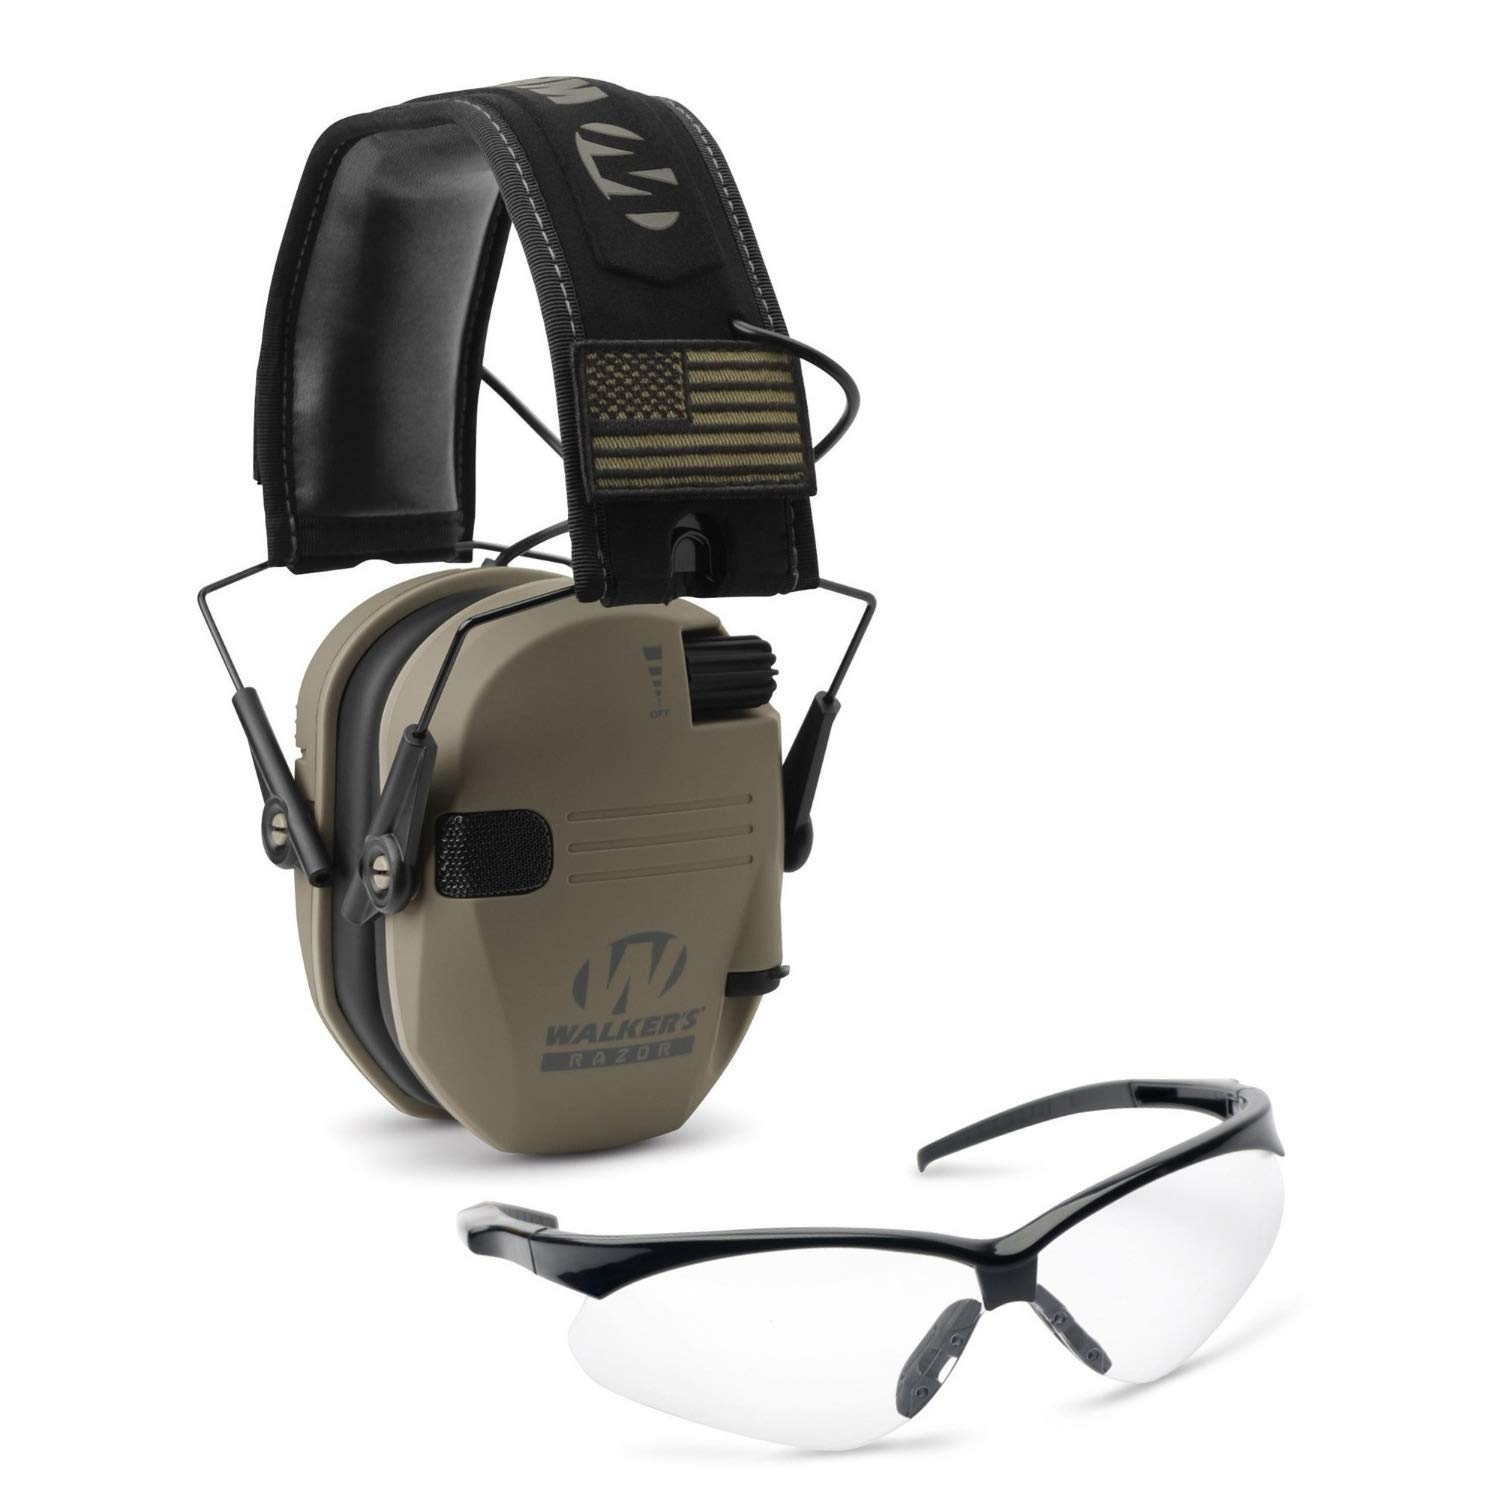 Walkers Razor Slim Electronic Hearing Protection Muffs with Sound Amplification and Suppression and Shooting Glasses Kit, Flat Dark Earth Patriot by Walkers (Image #1)